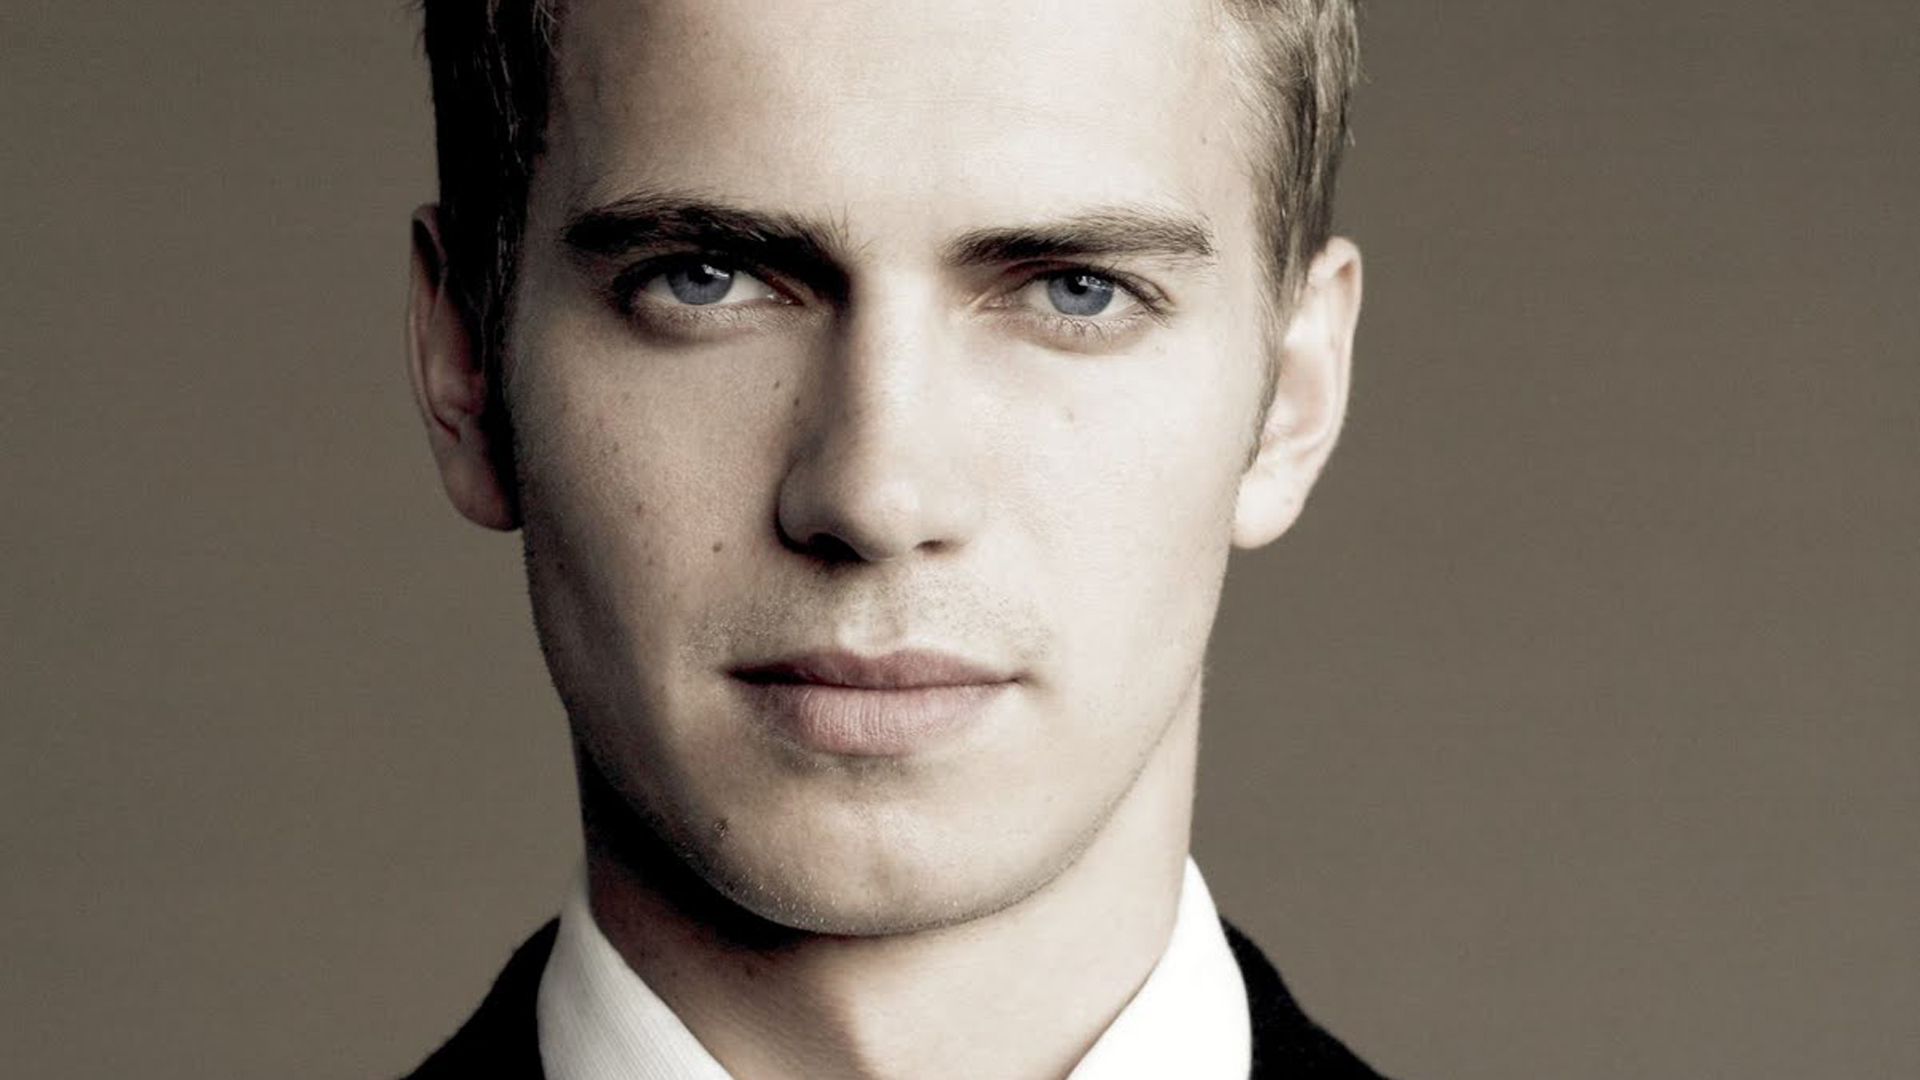 Hd Wallpaper Pack Hayden Christensen Hd Wallpapers For Desktop Download